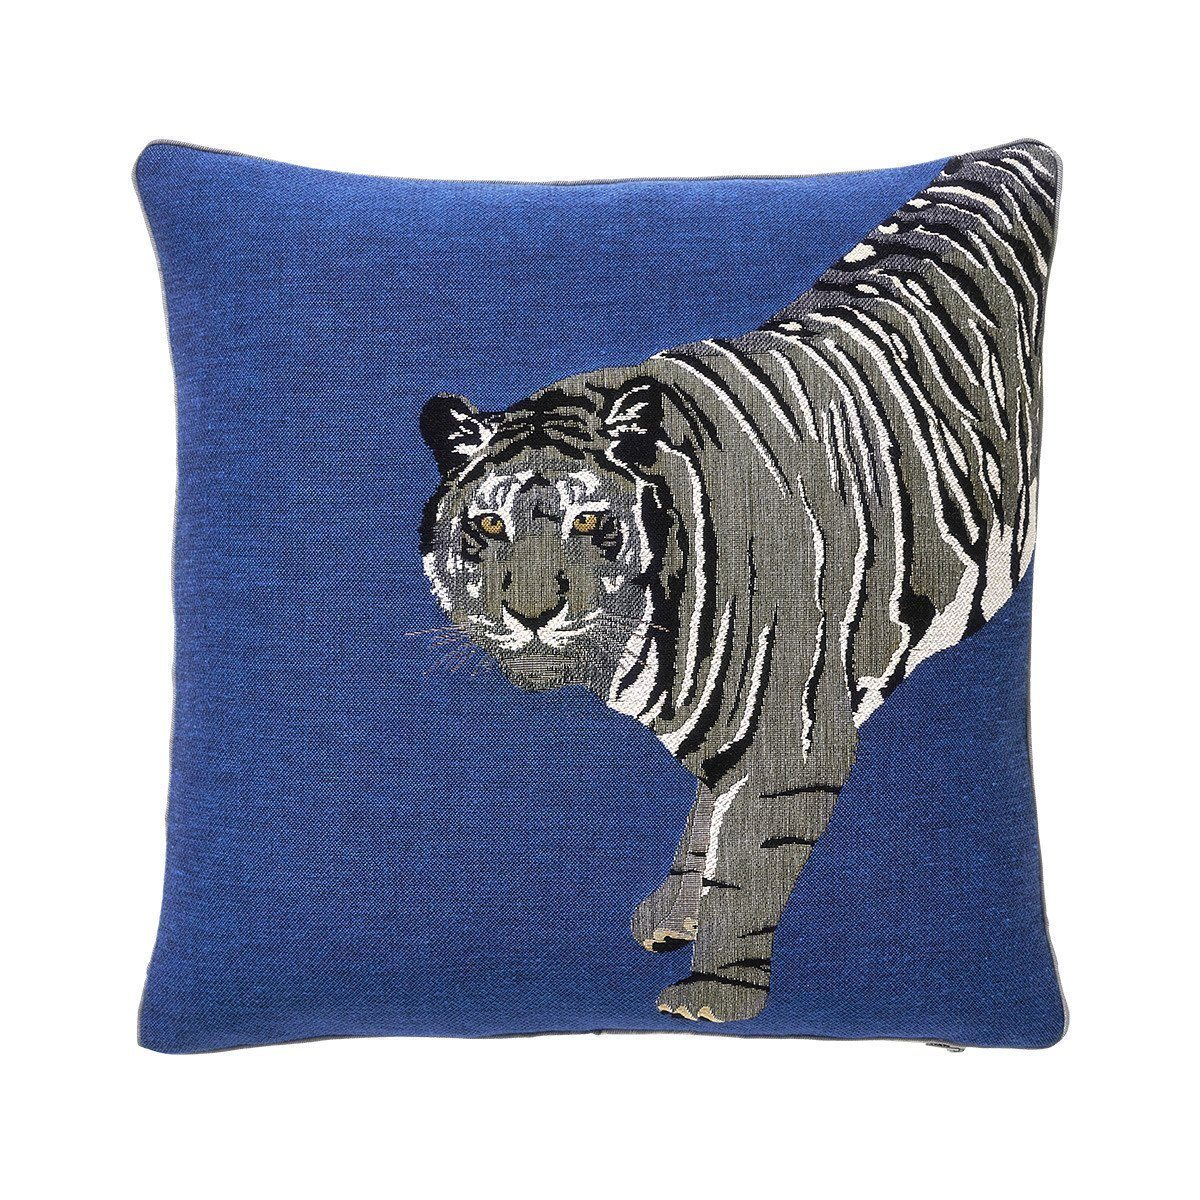 Coromande Olympe Decorative Pillow by Iosis